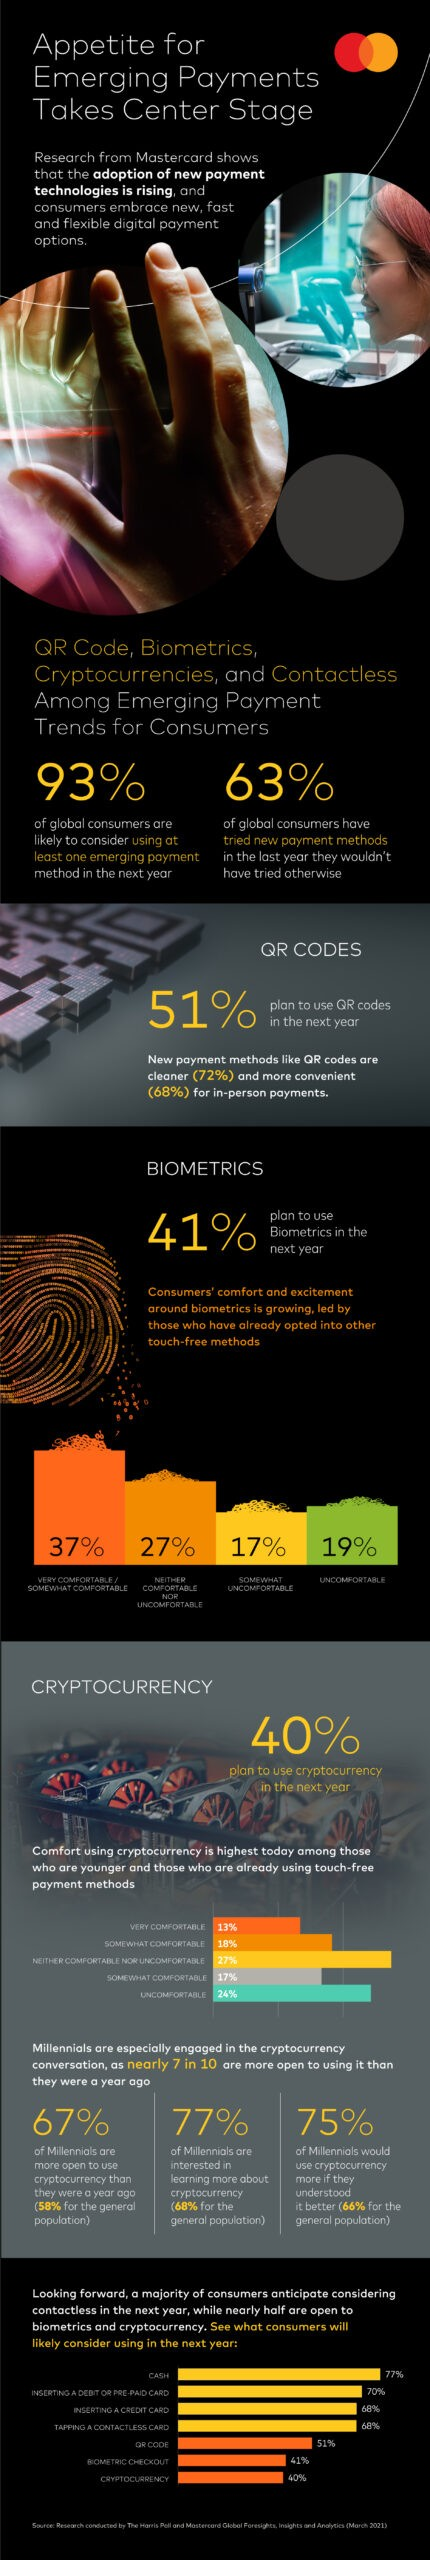 Mastercard New Payments Index 2021 Infographic, Mastercard